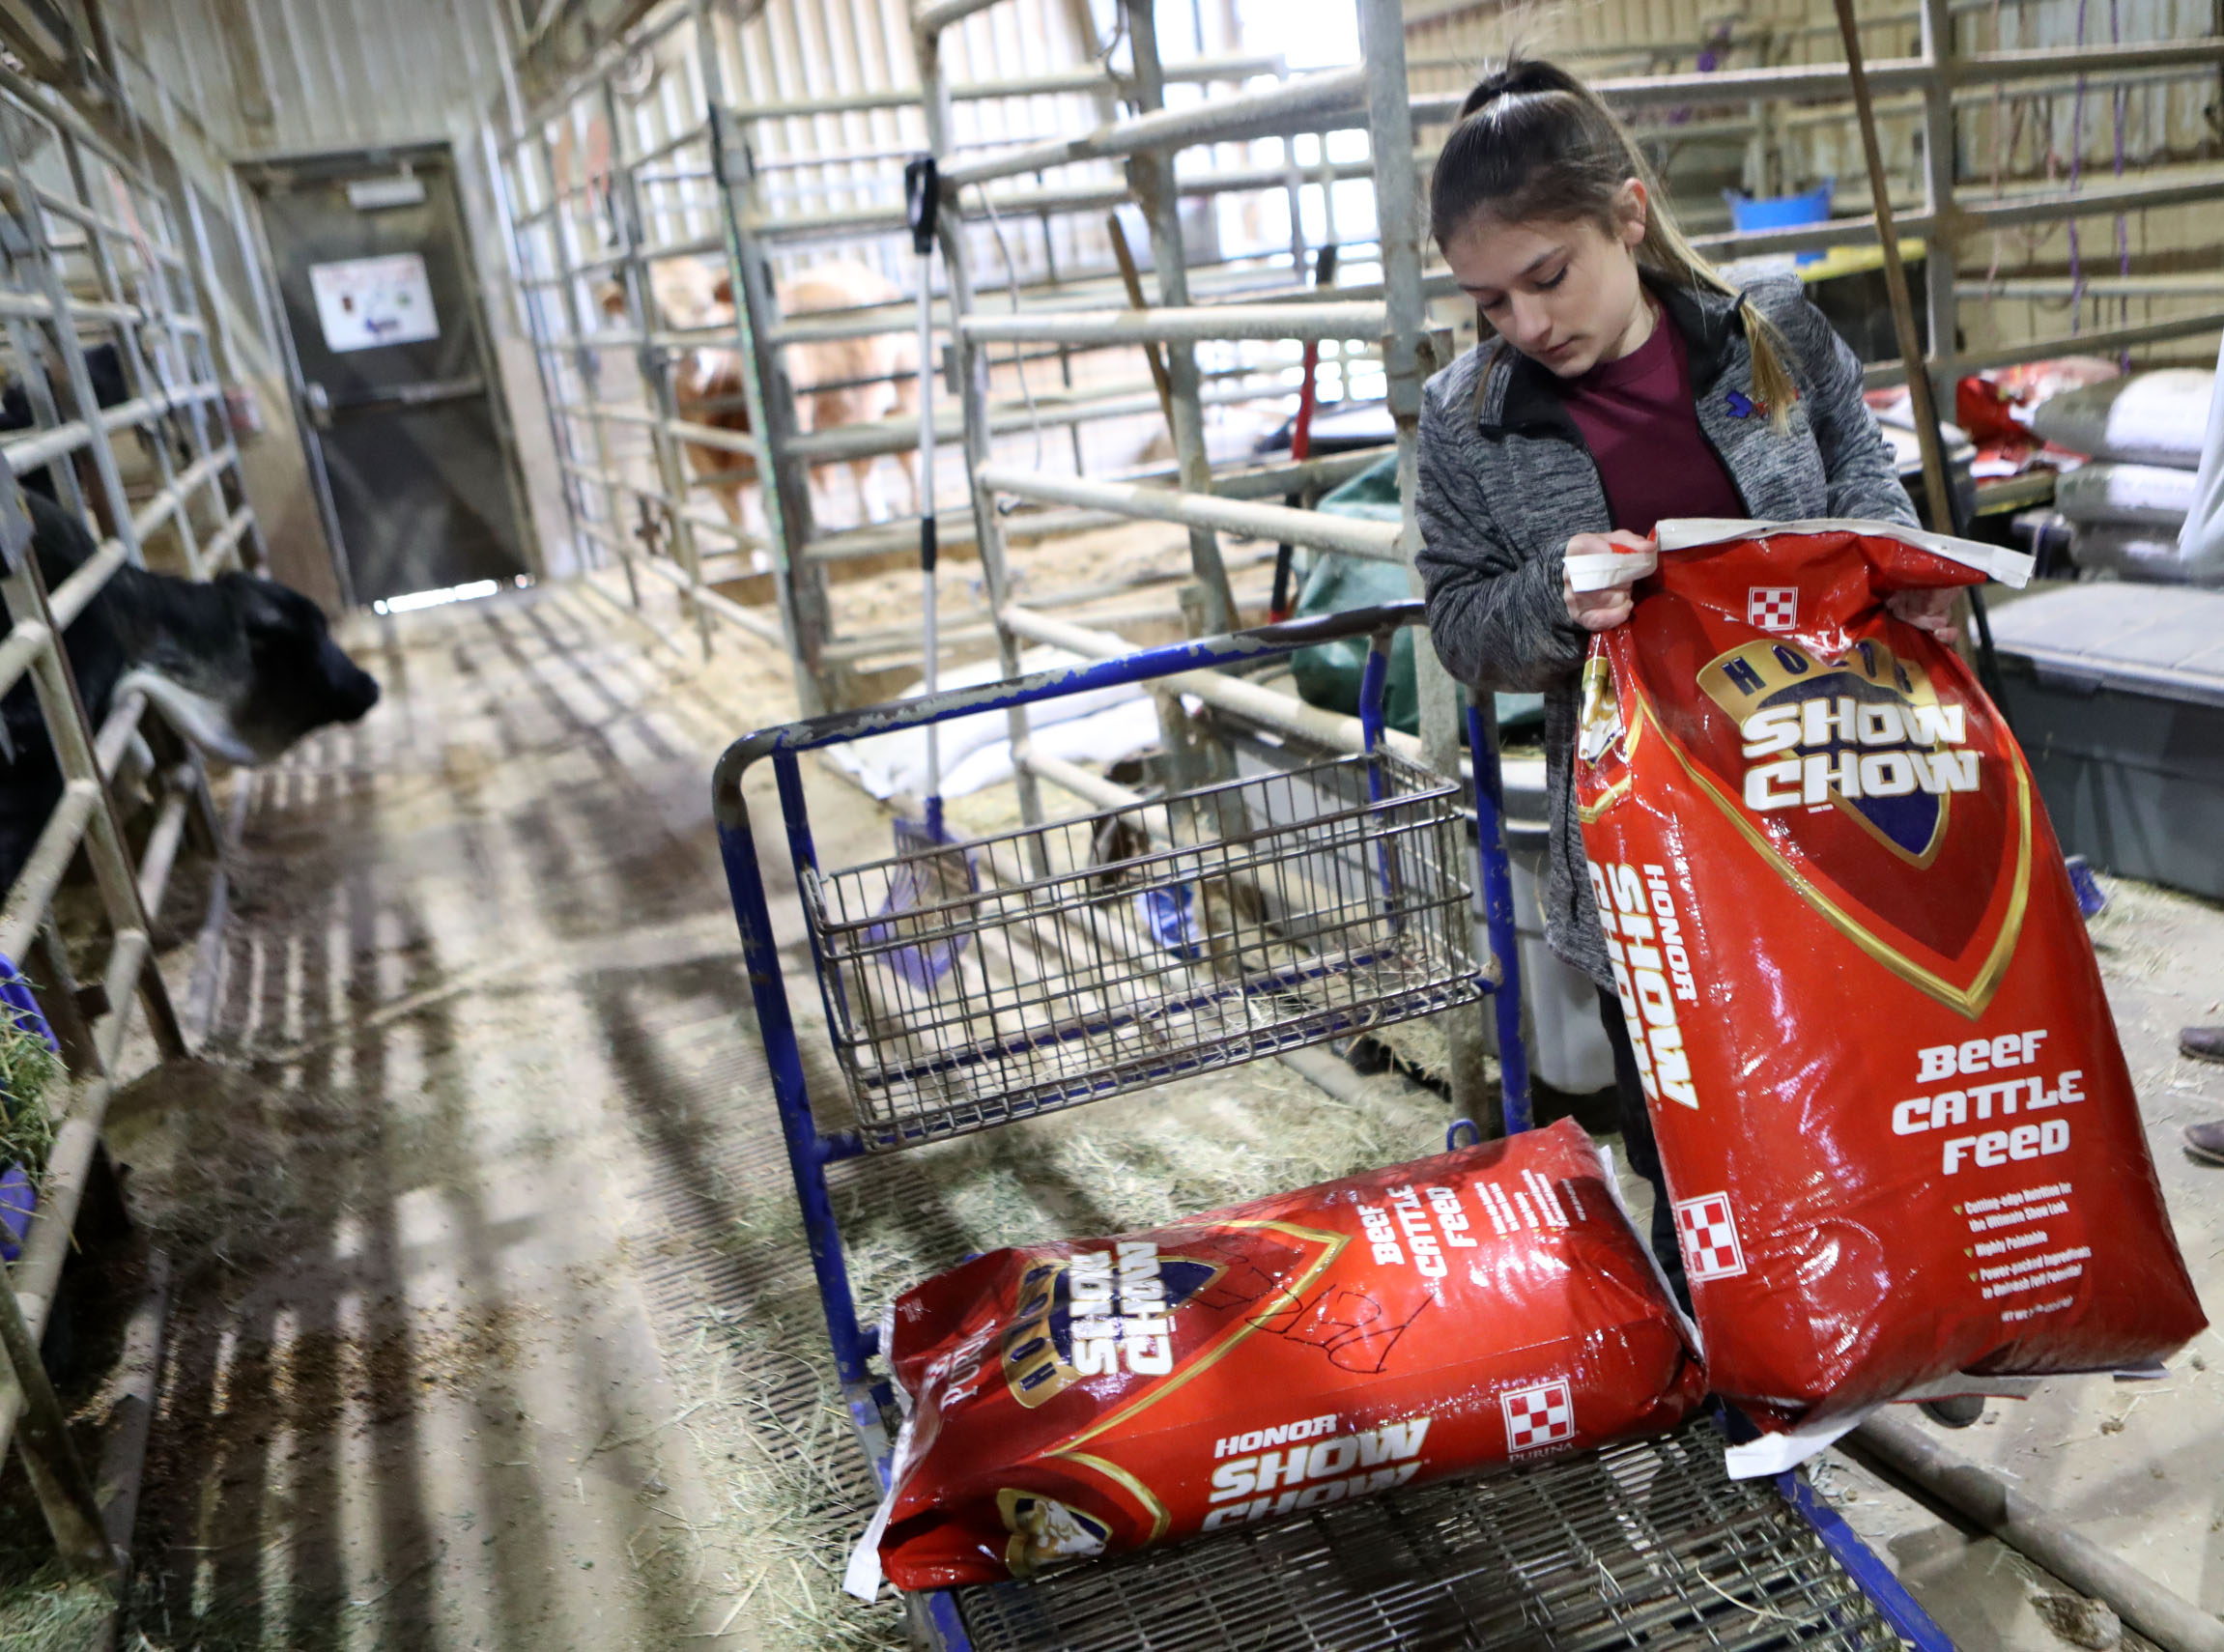 Morgan Perez picks up food for her heifer while preparing for the Houston Livestock Show and Rodeo at the Dickinson Agriculture Science Facility on Tuesday, March 5, 2019. Perez placed seventh in the Junior Breeding Beef Heifer Show: Chianina at the Houston rodeo.